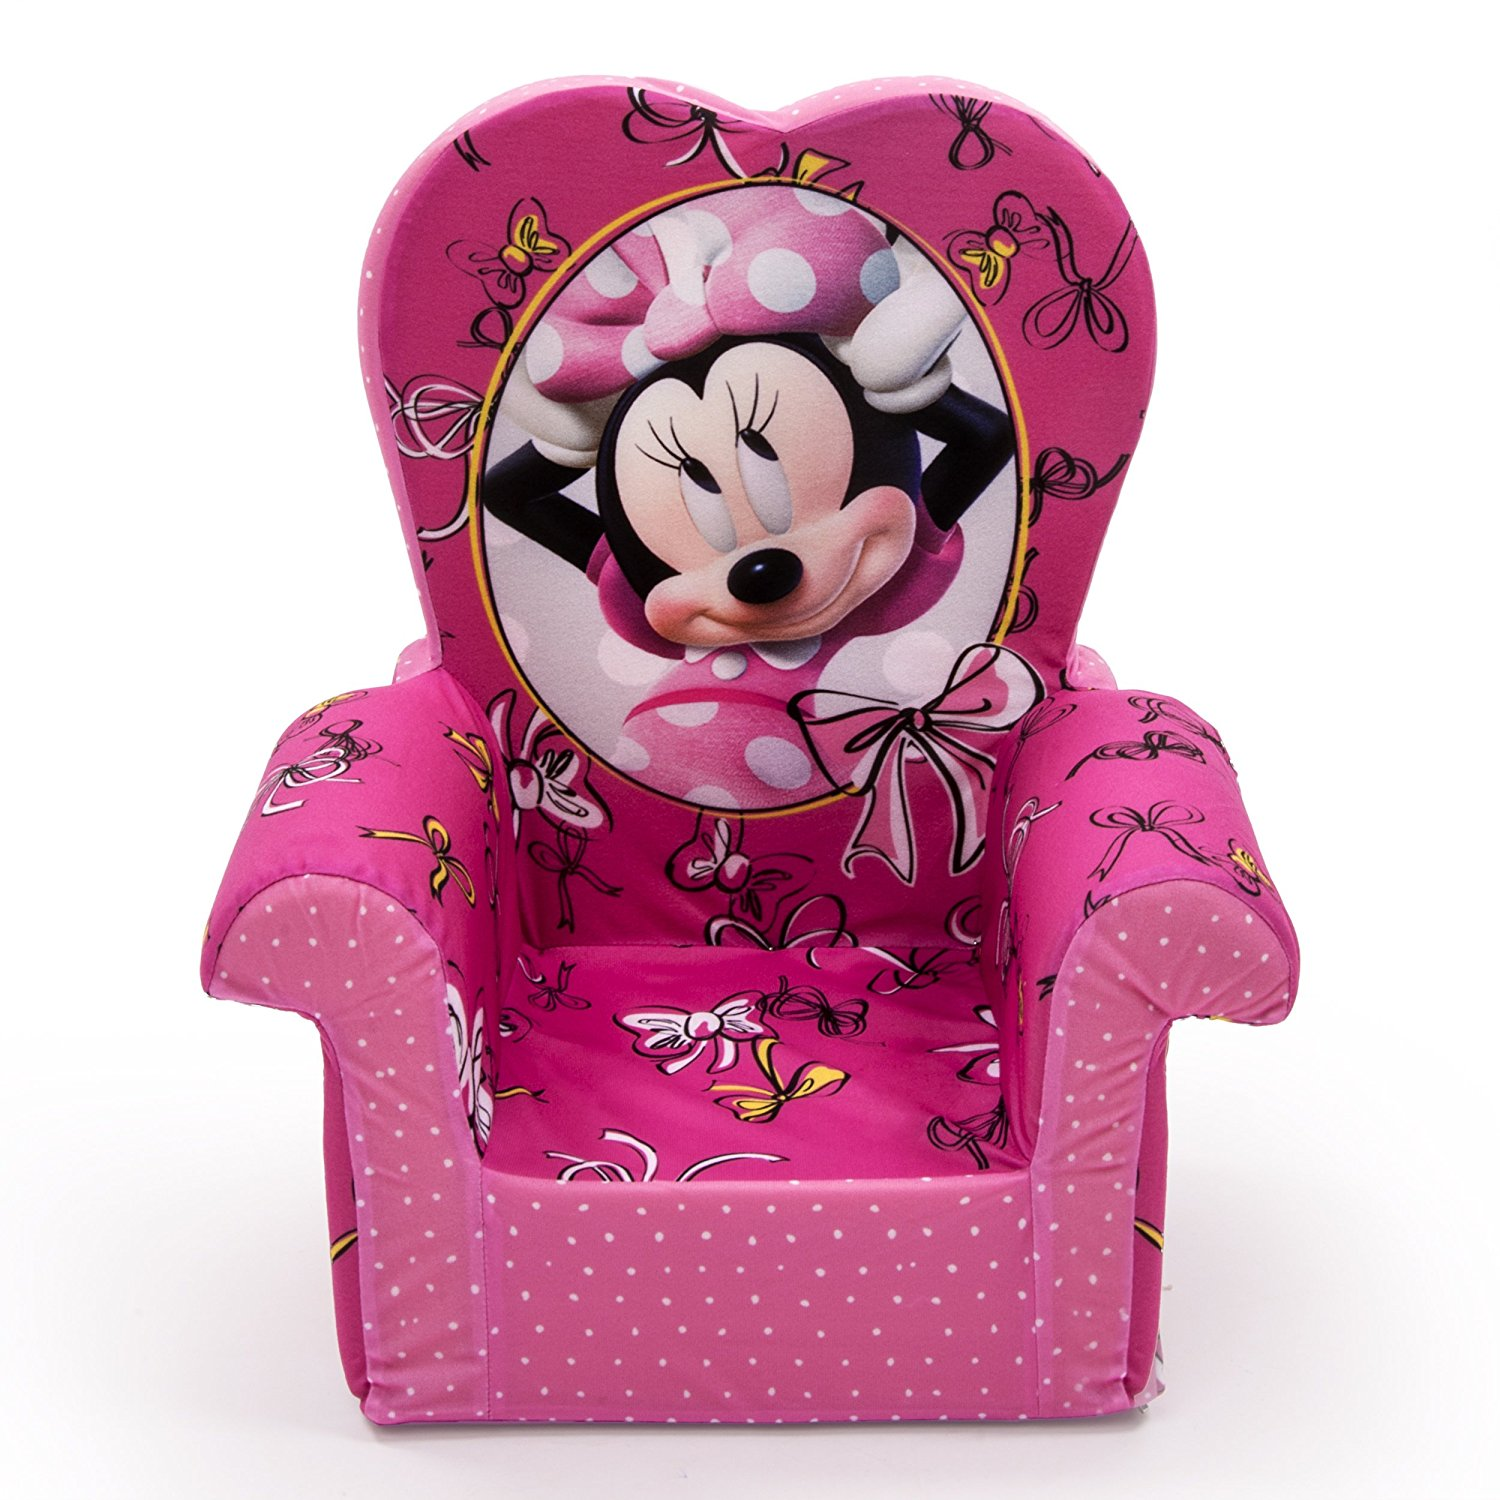 minnie mouse recliner chair best power chairs canada marshmallow furniture childrens foam high back